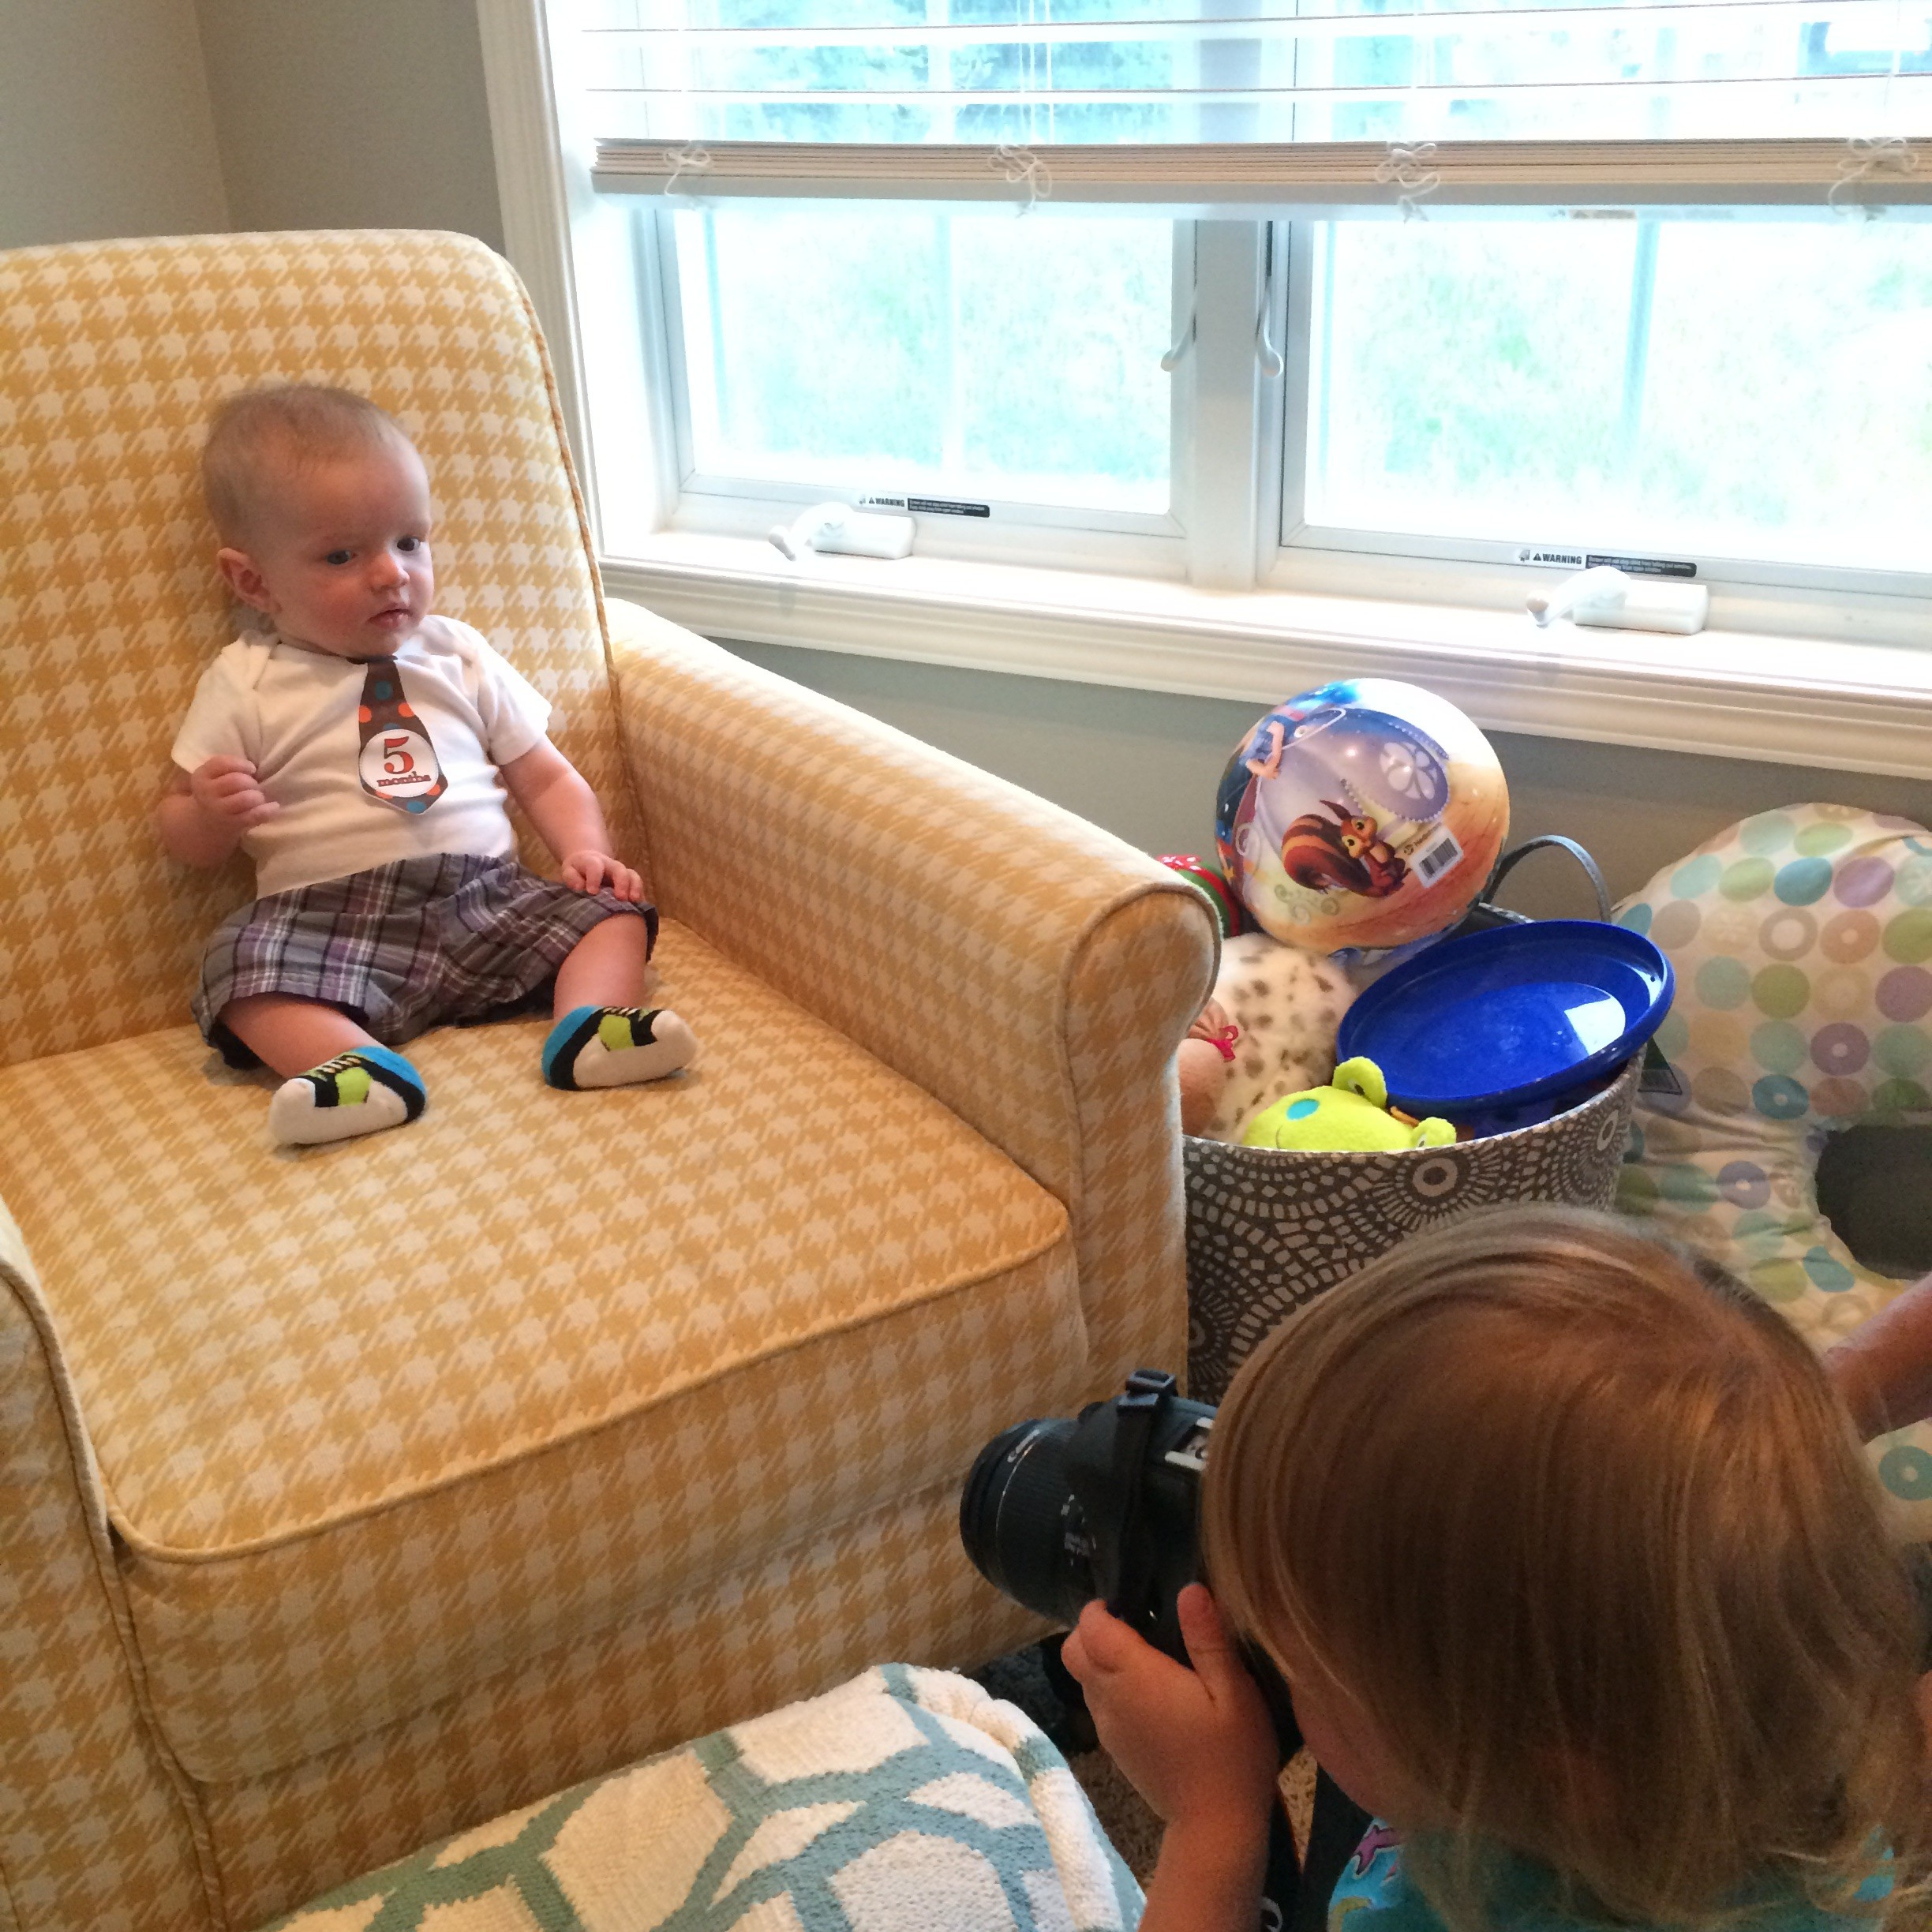 Behind the scenes baby photo shoot @ohbotherblog